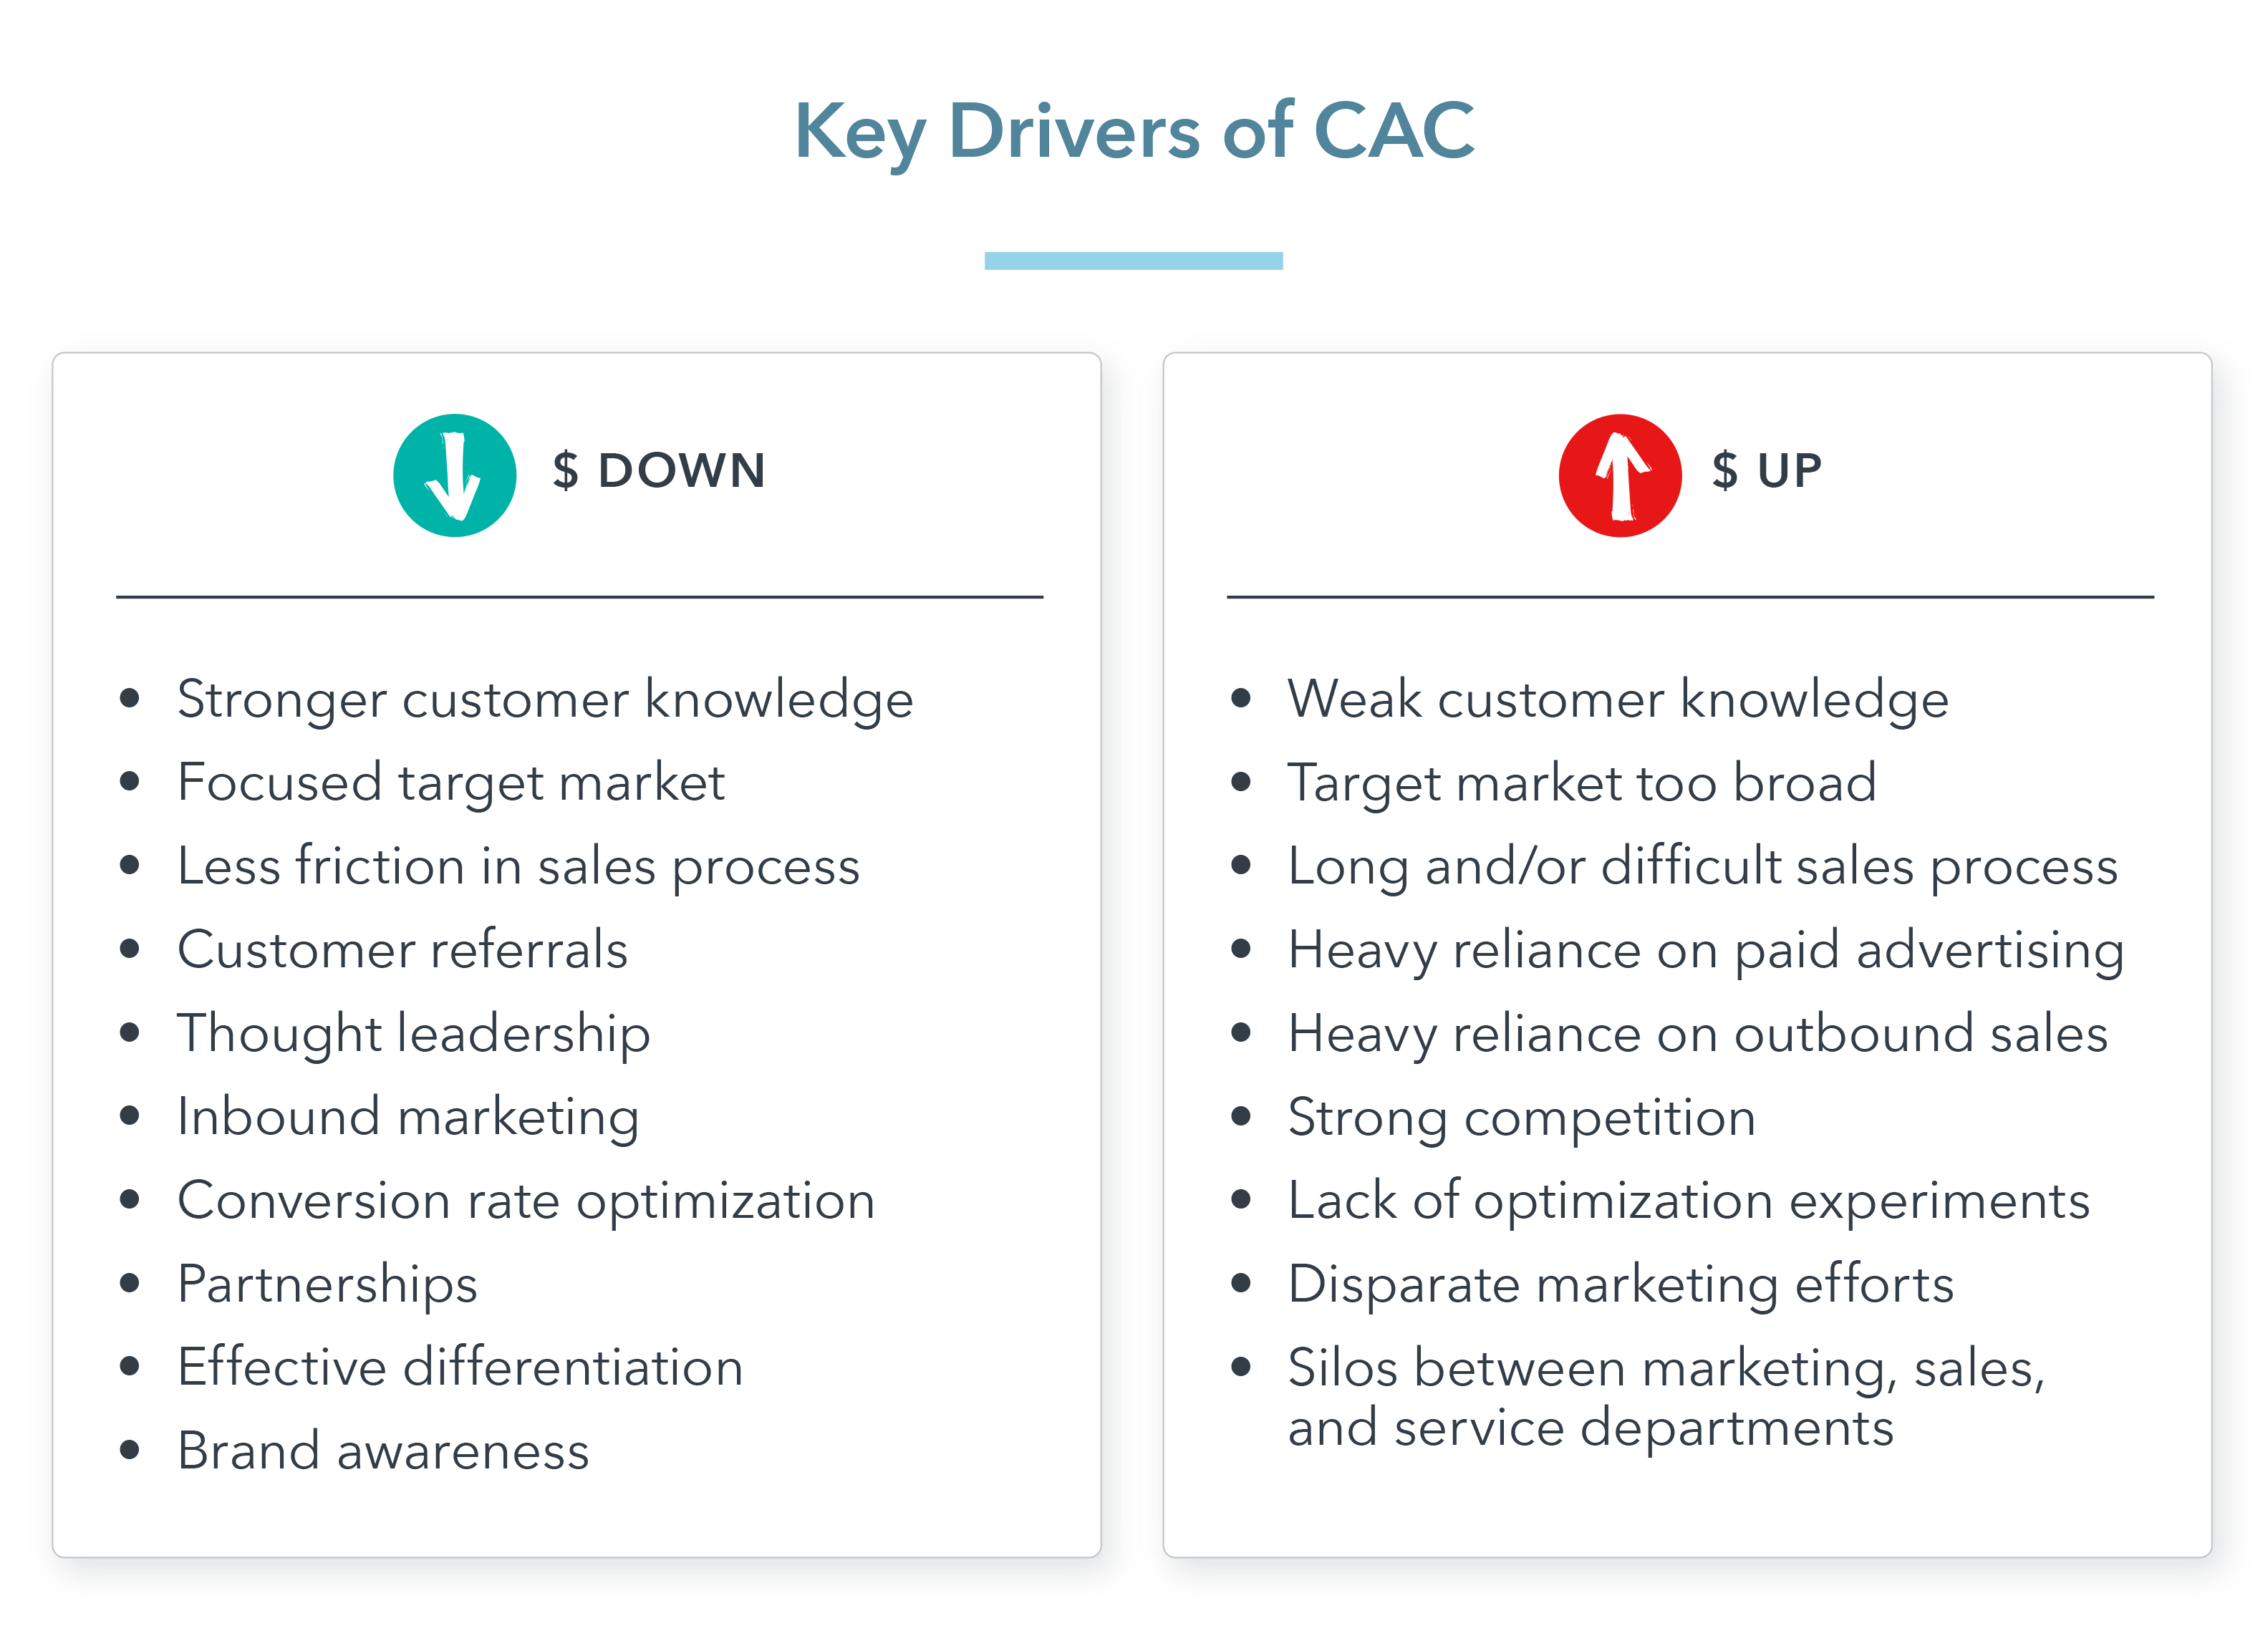 Key Drivers of CAC